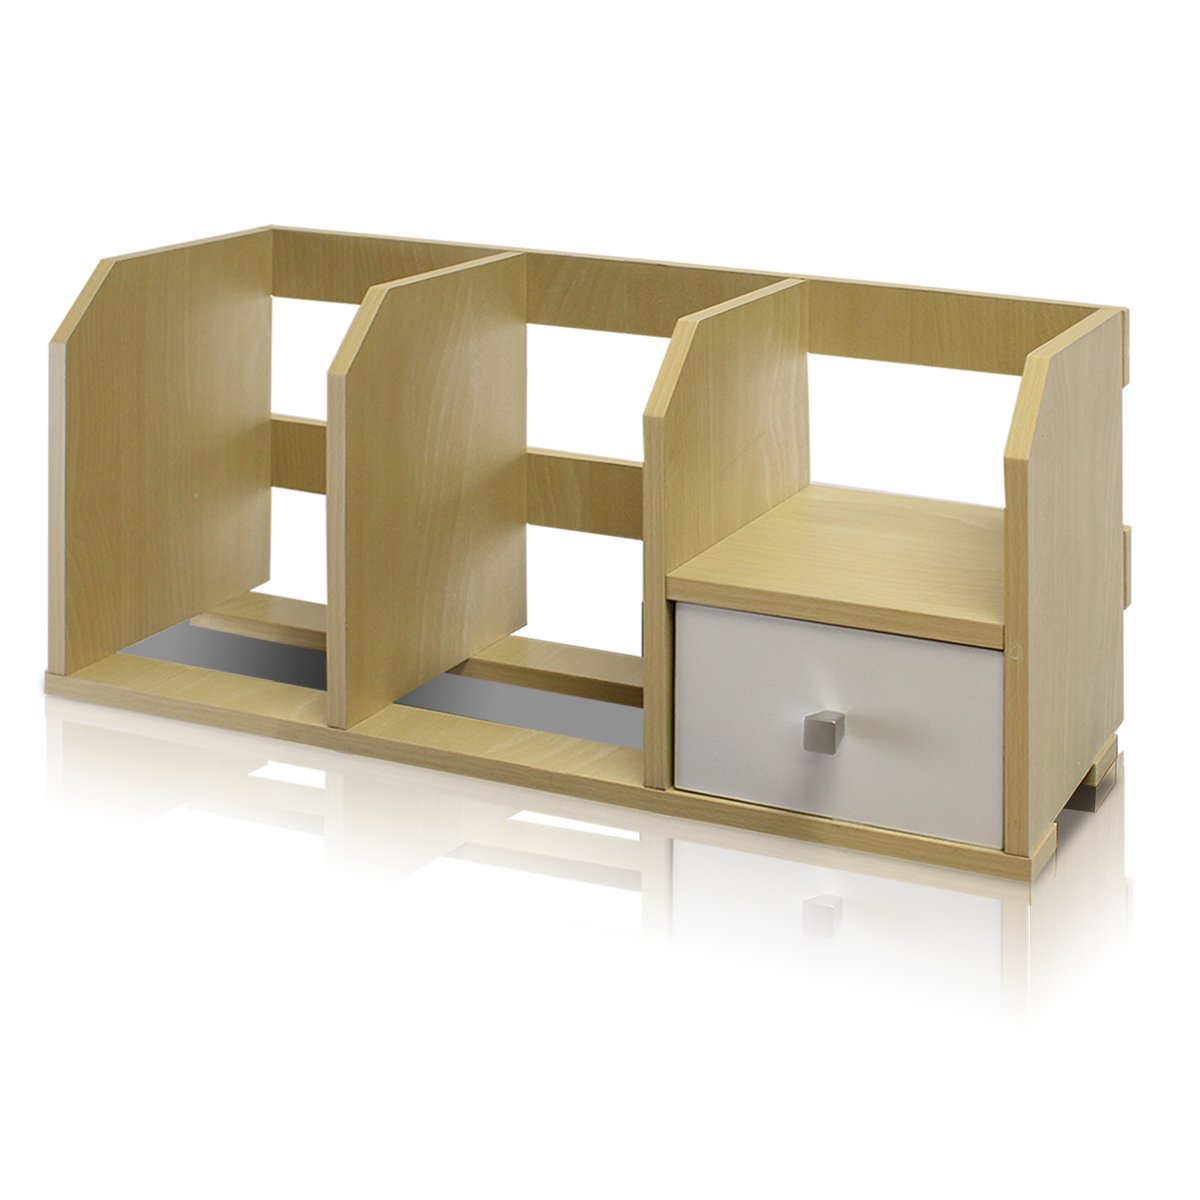 Furinno 12247SBE/WH Pasir Desk Storage Shelf with Bin, Steam Beech/White